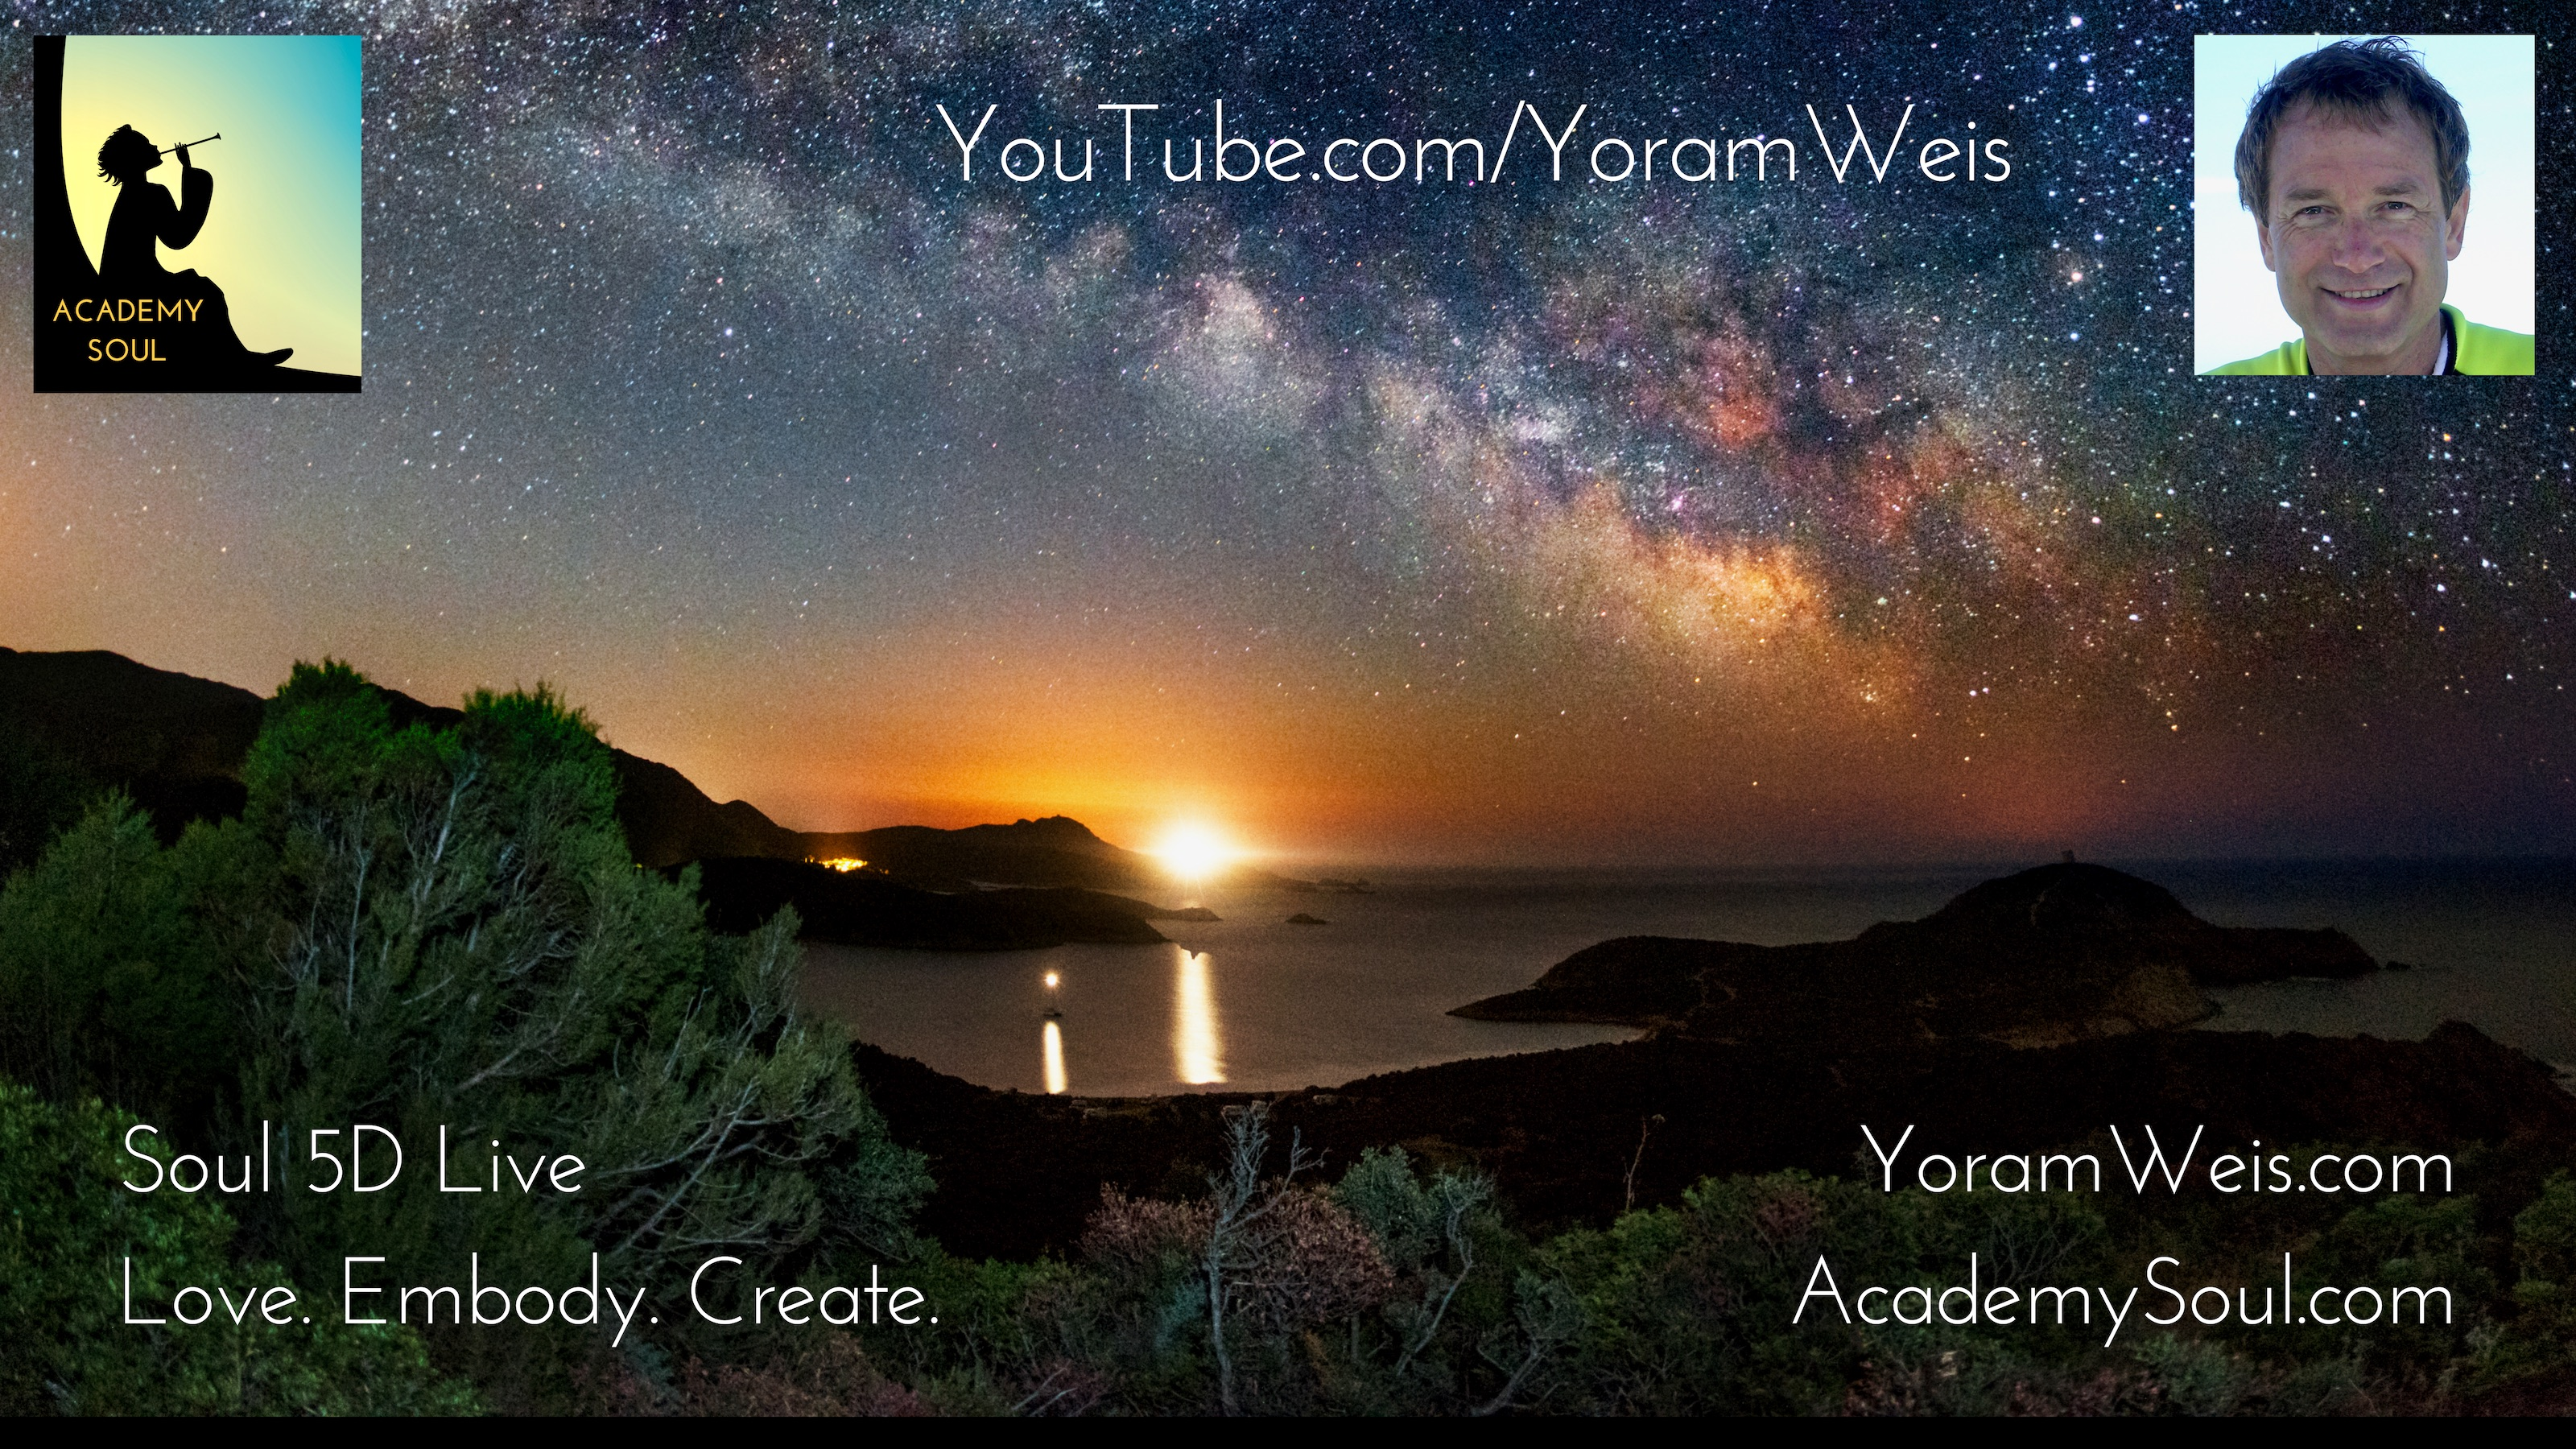 Link to YouTube by Yoram Weis